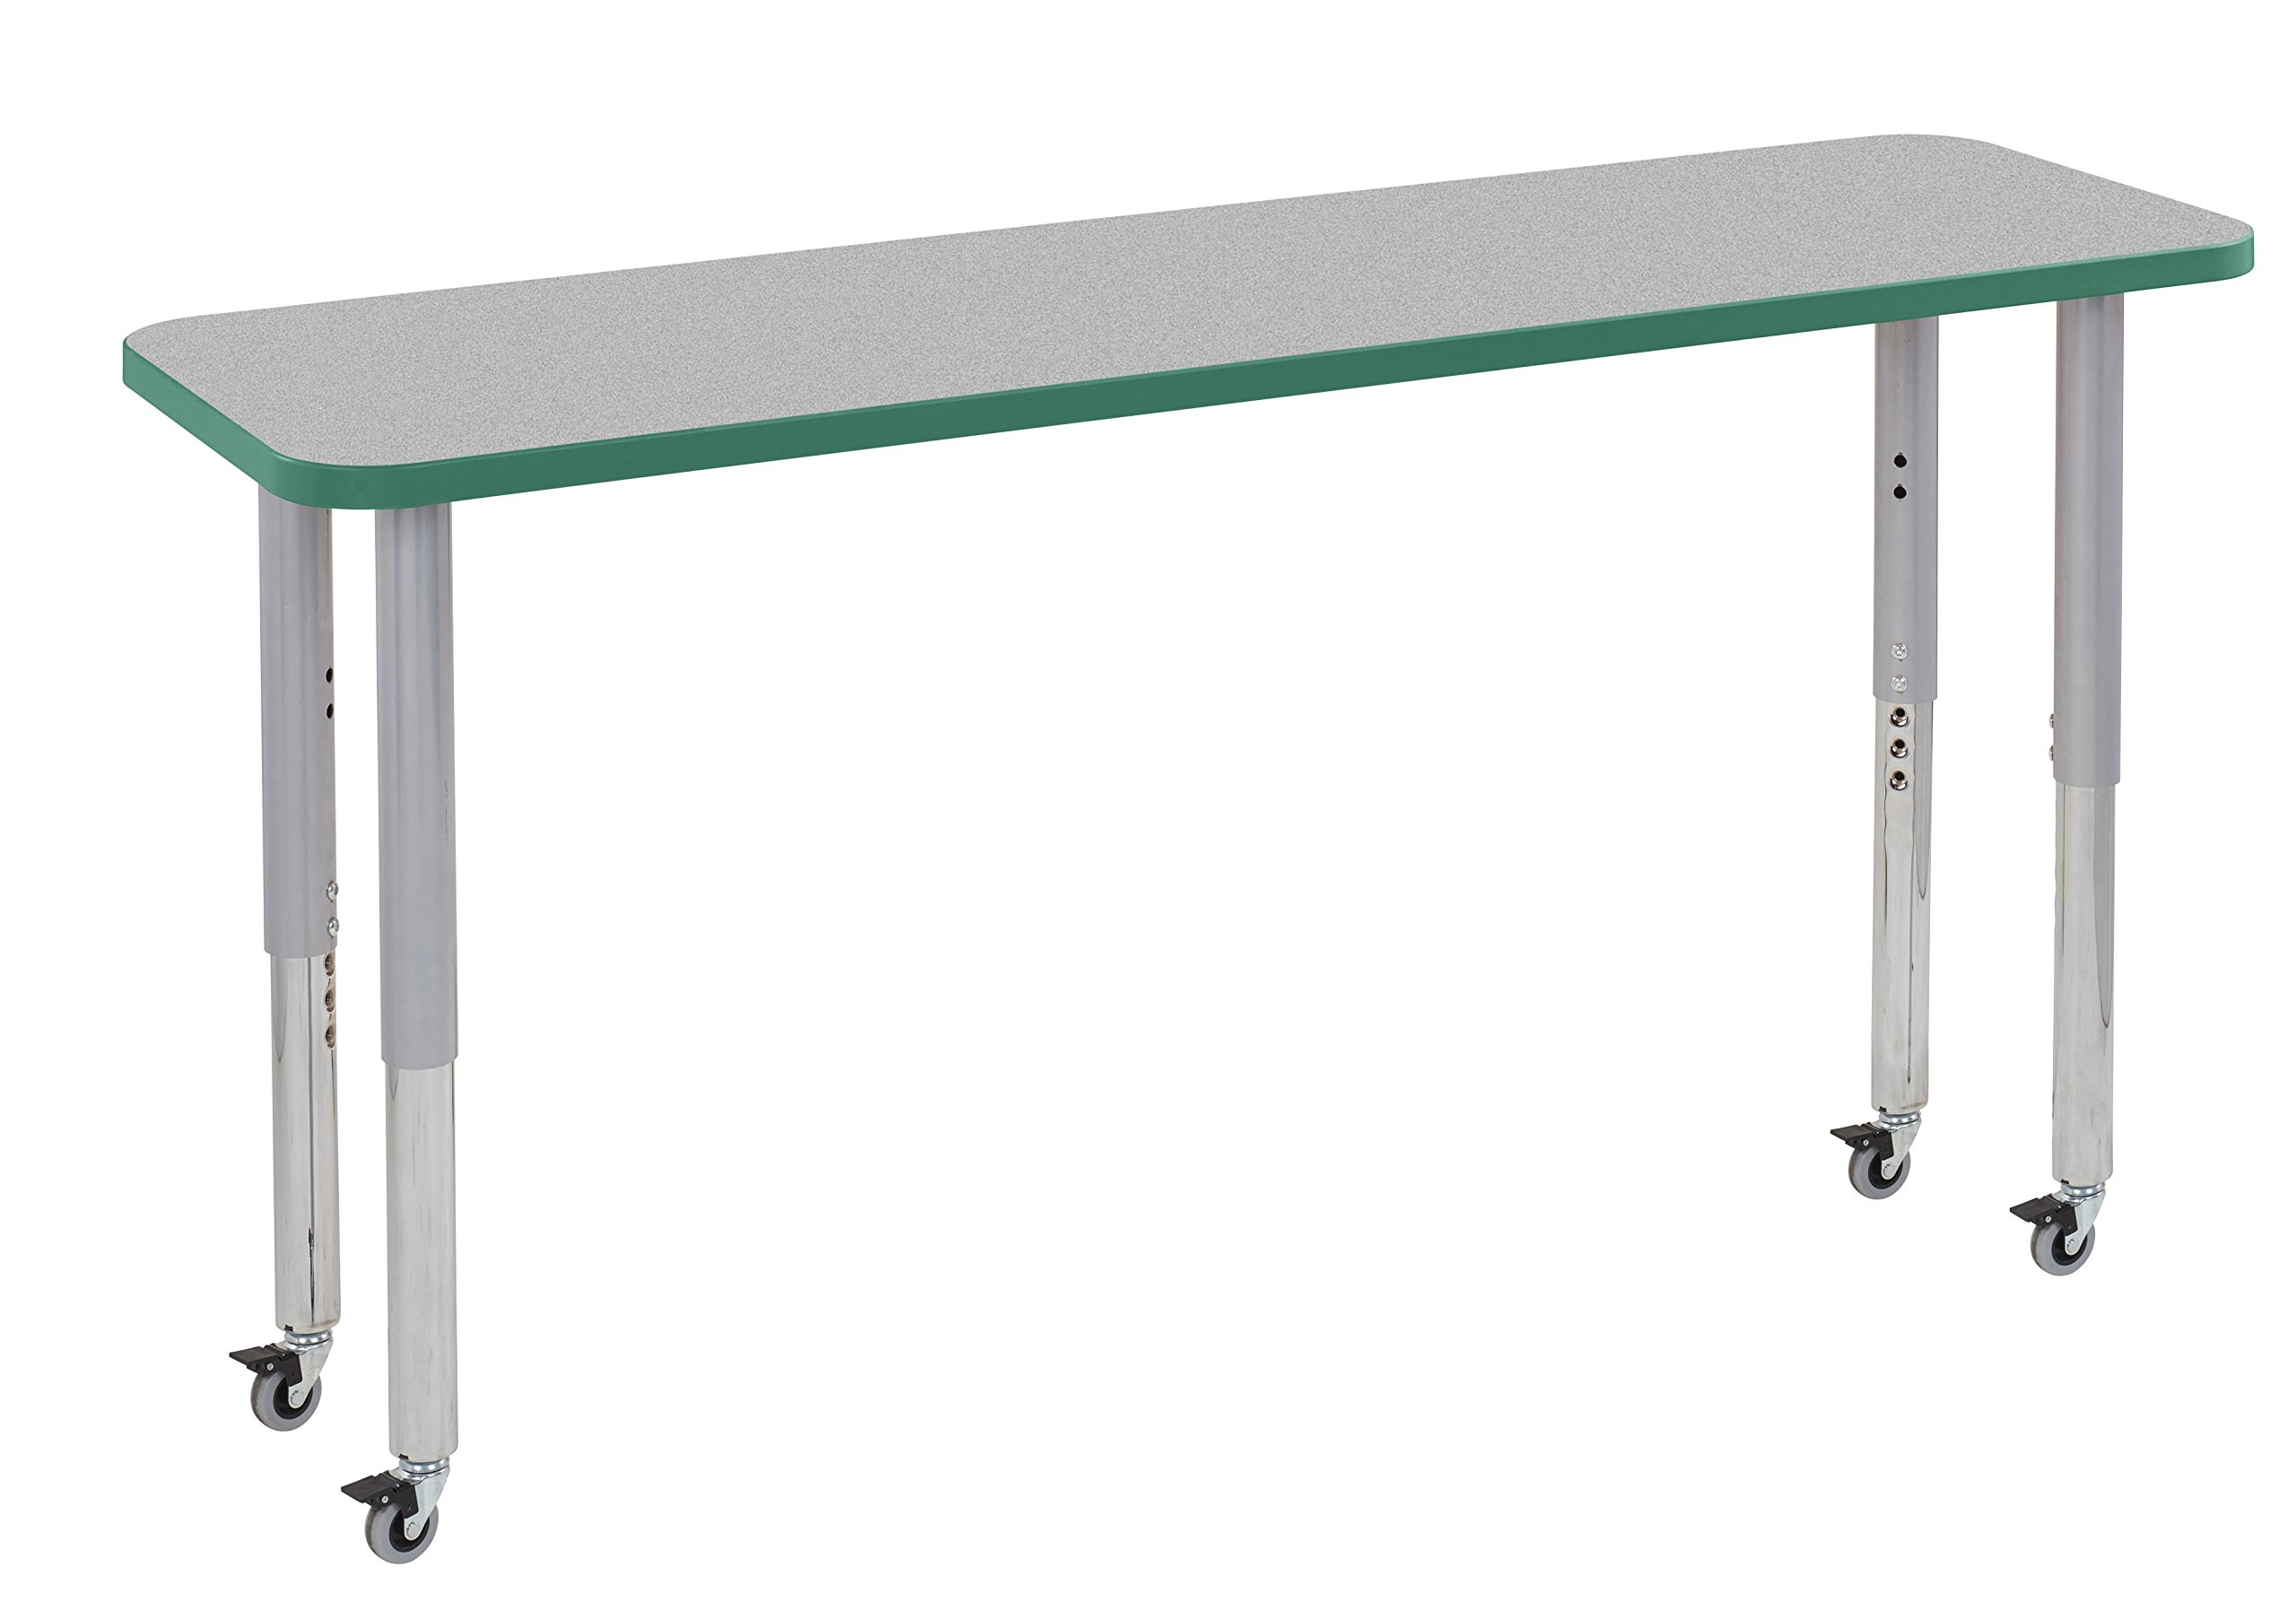 ECR4Kids Thermo-fused 18'' x 60'' Mobile Rectangle School Activity Table, Super Legs w/ Glides and Casters, Adjustable Height 19-30 inch (Grey/Green/Silver)